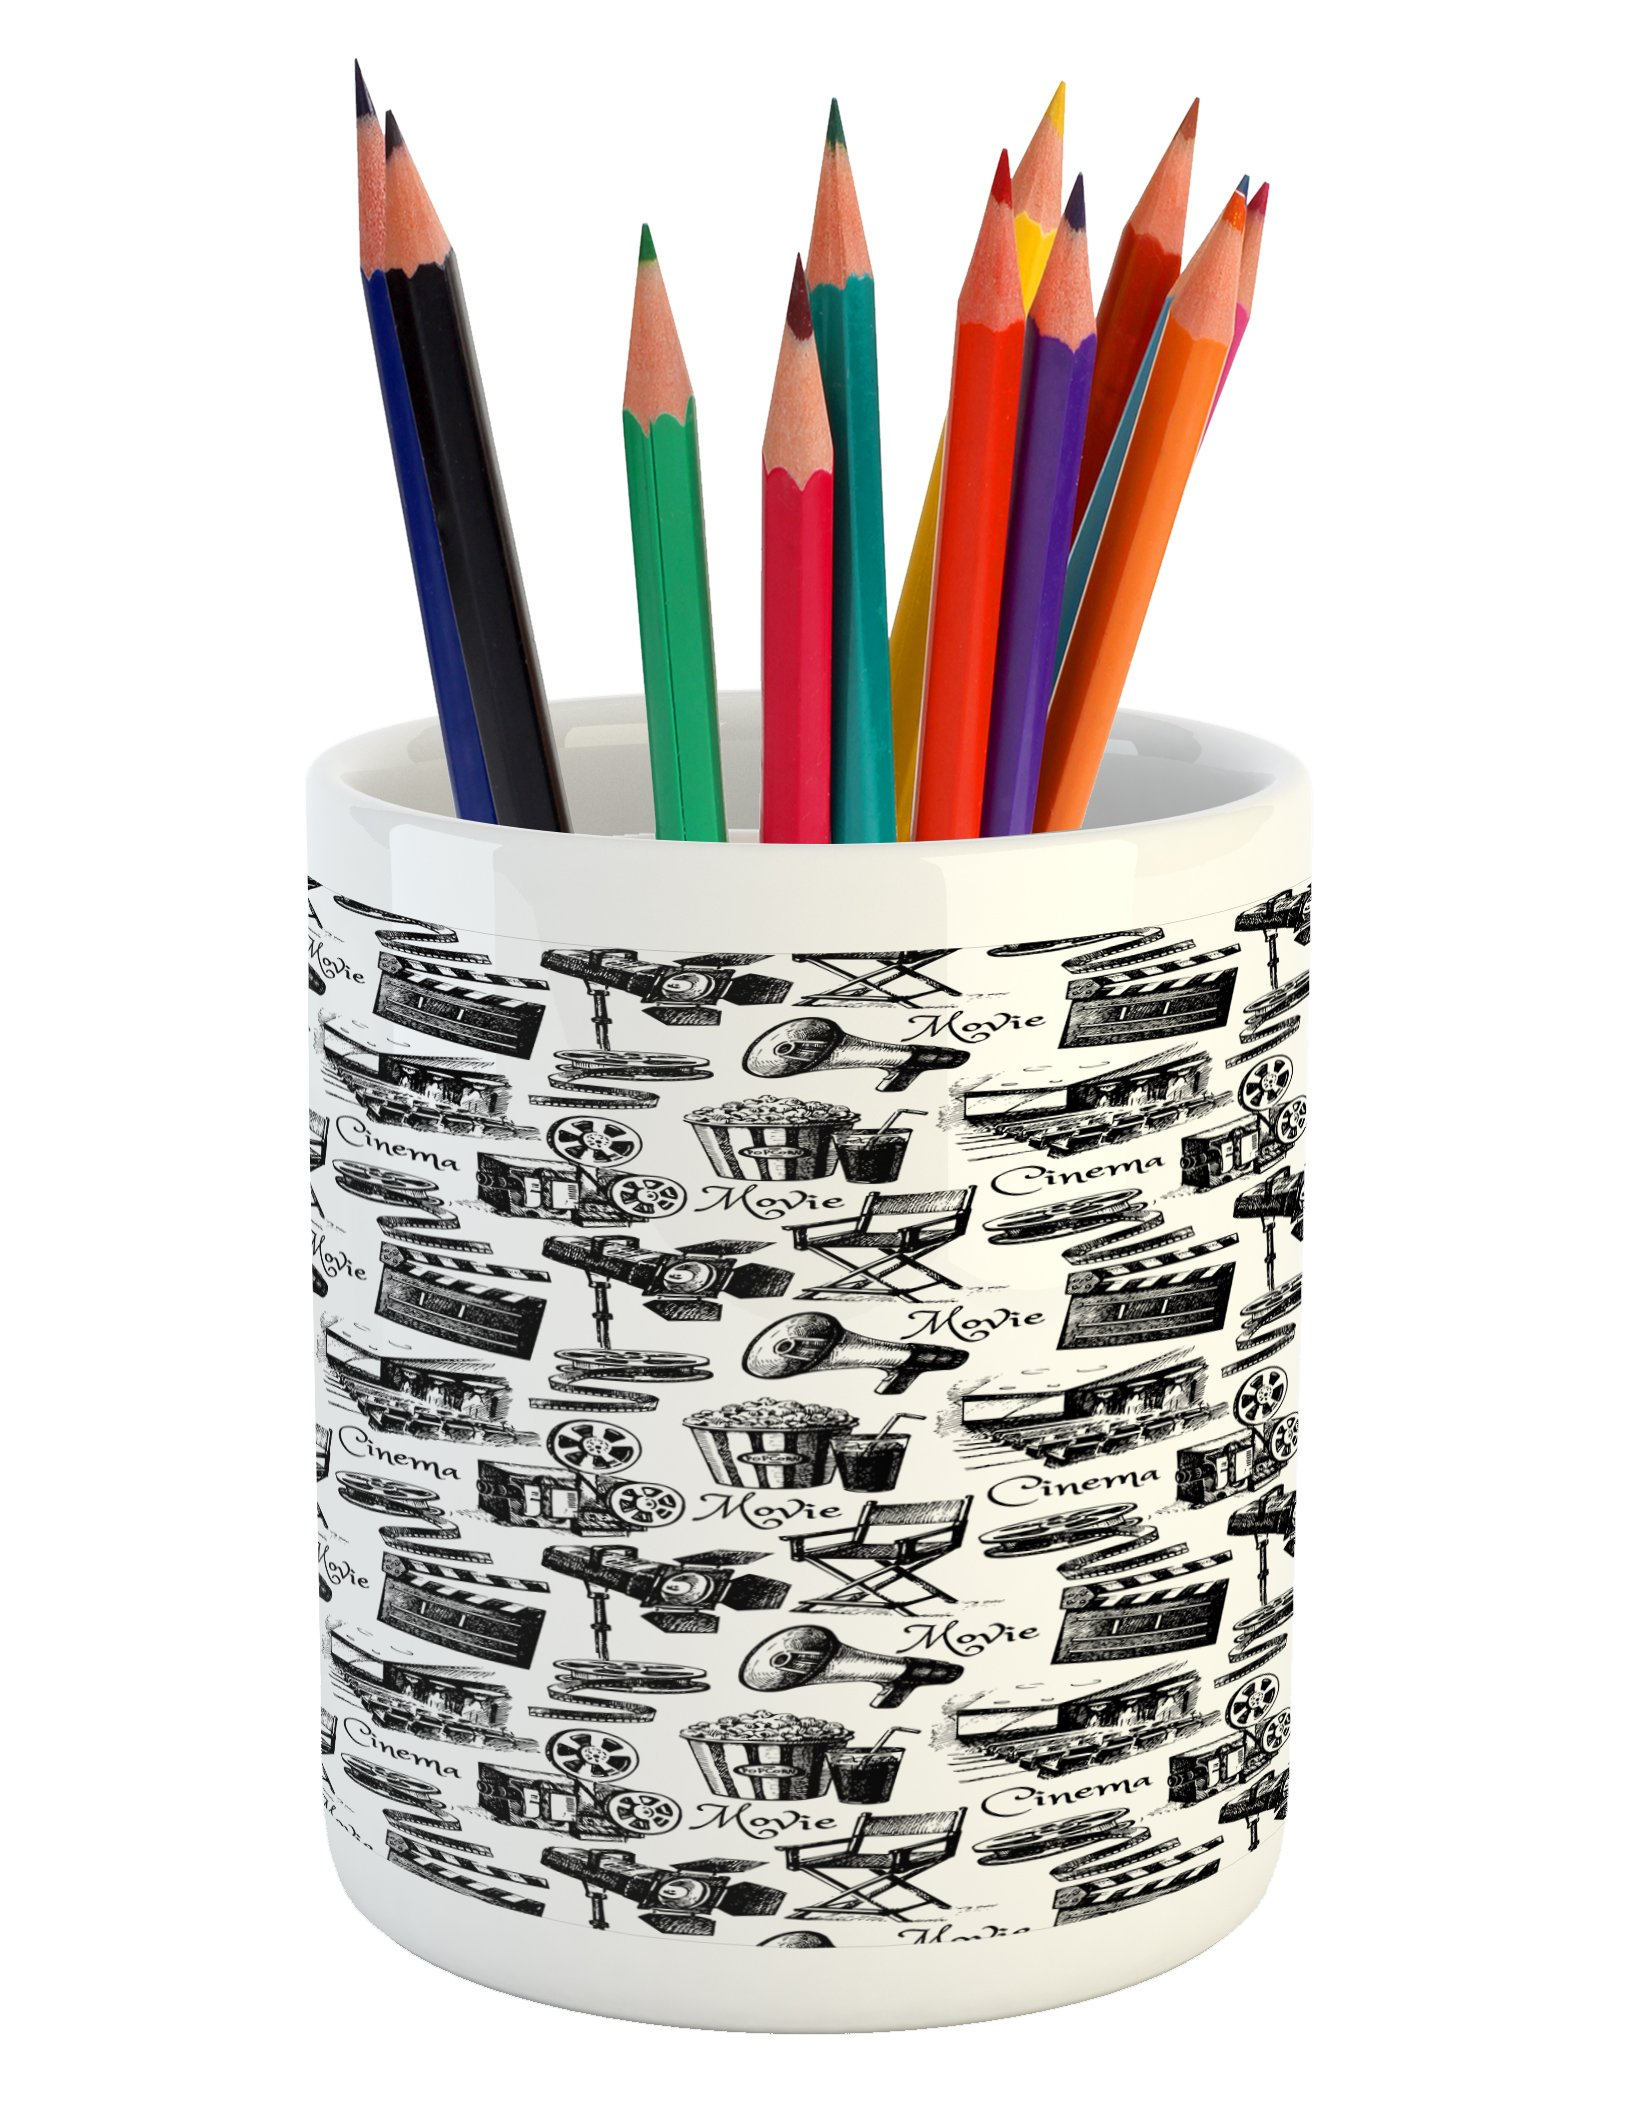 Lunarable Movie Pencil Pen Holder, Vintage Artful Film Cinema Icons Motion Camera Action Record Graphic Style Print, Printed Ceramic Pencil Pen Holder for Desk Office Accessory, Black White